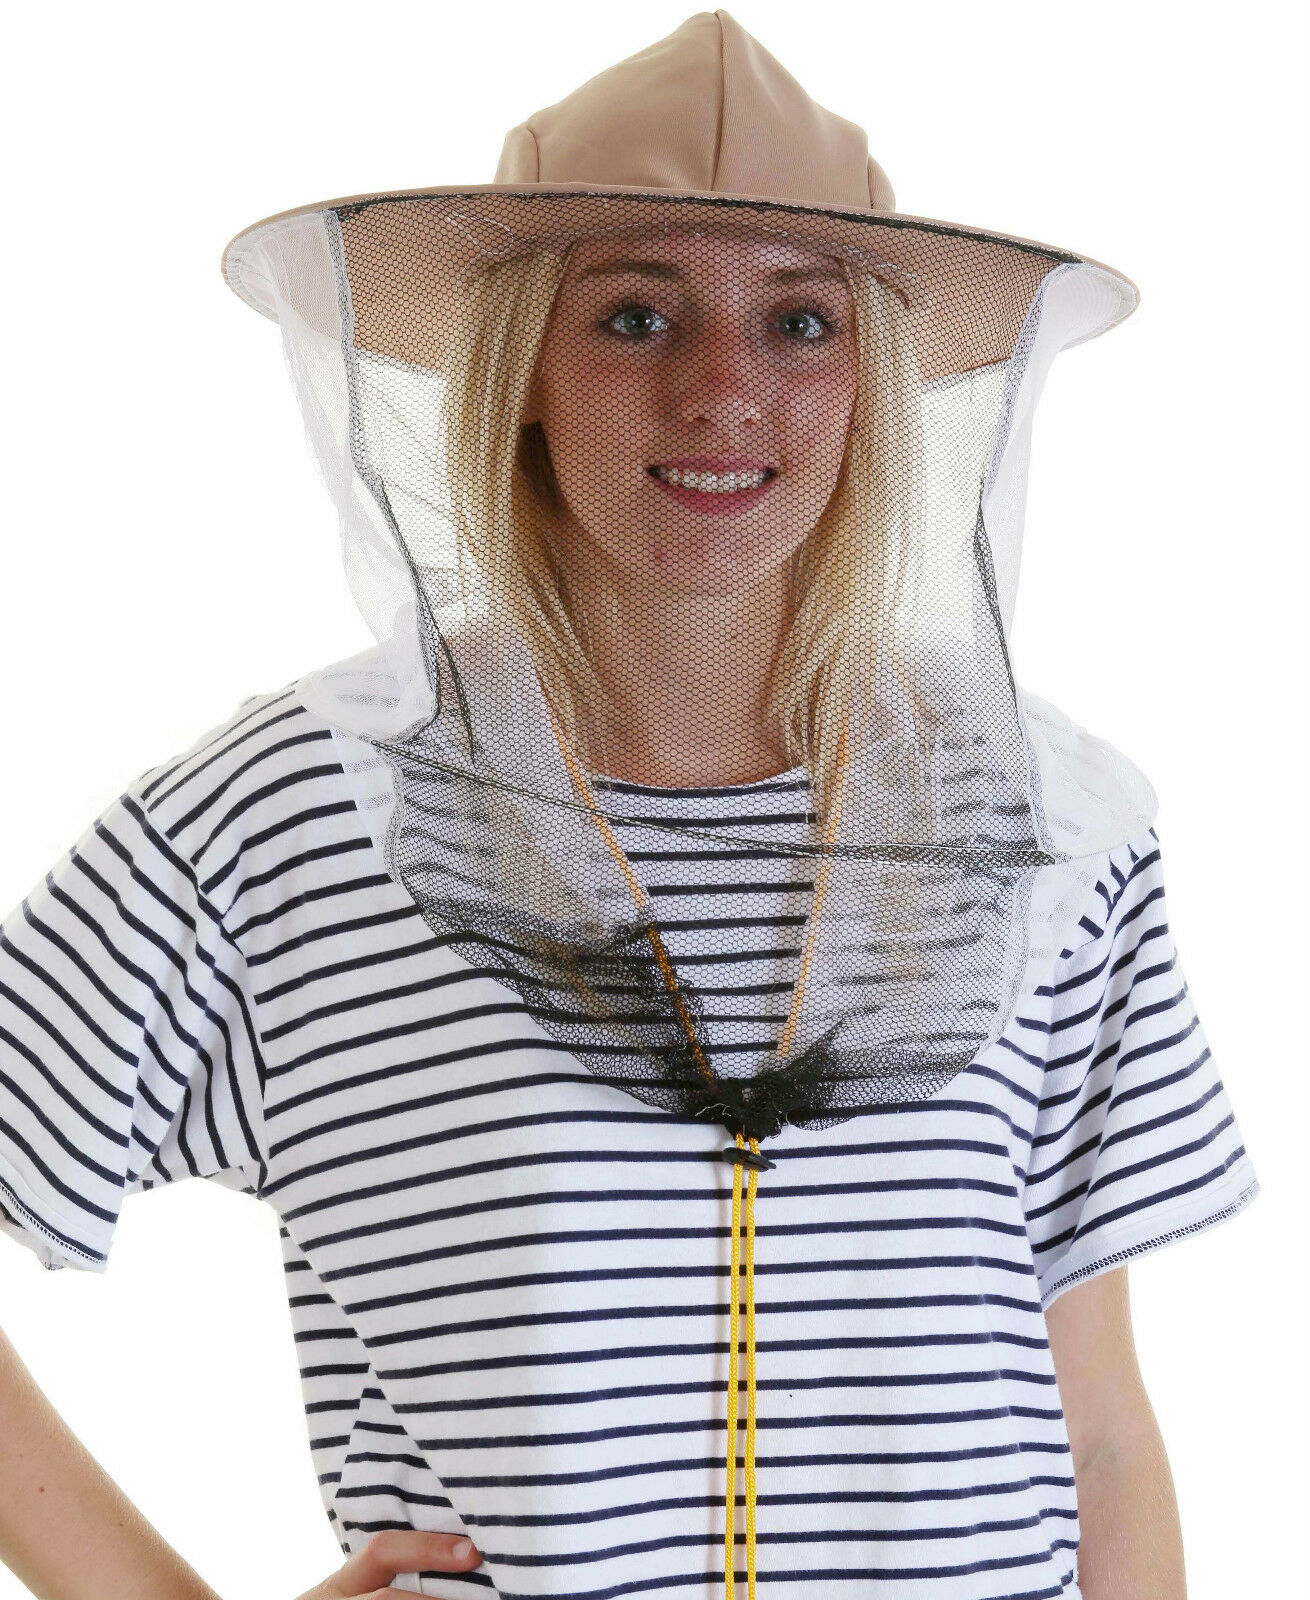 Beekeeping LATTE BEE HAT AND VEIL - Double hoop and toggle